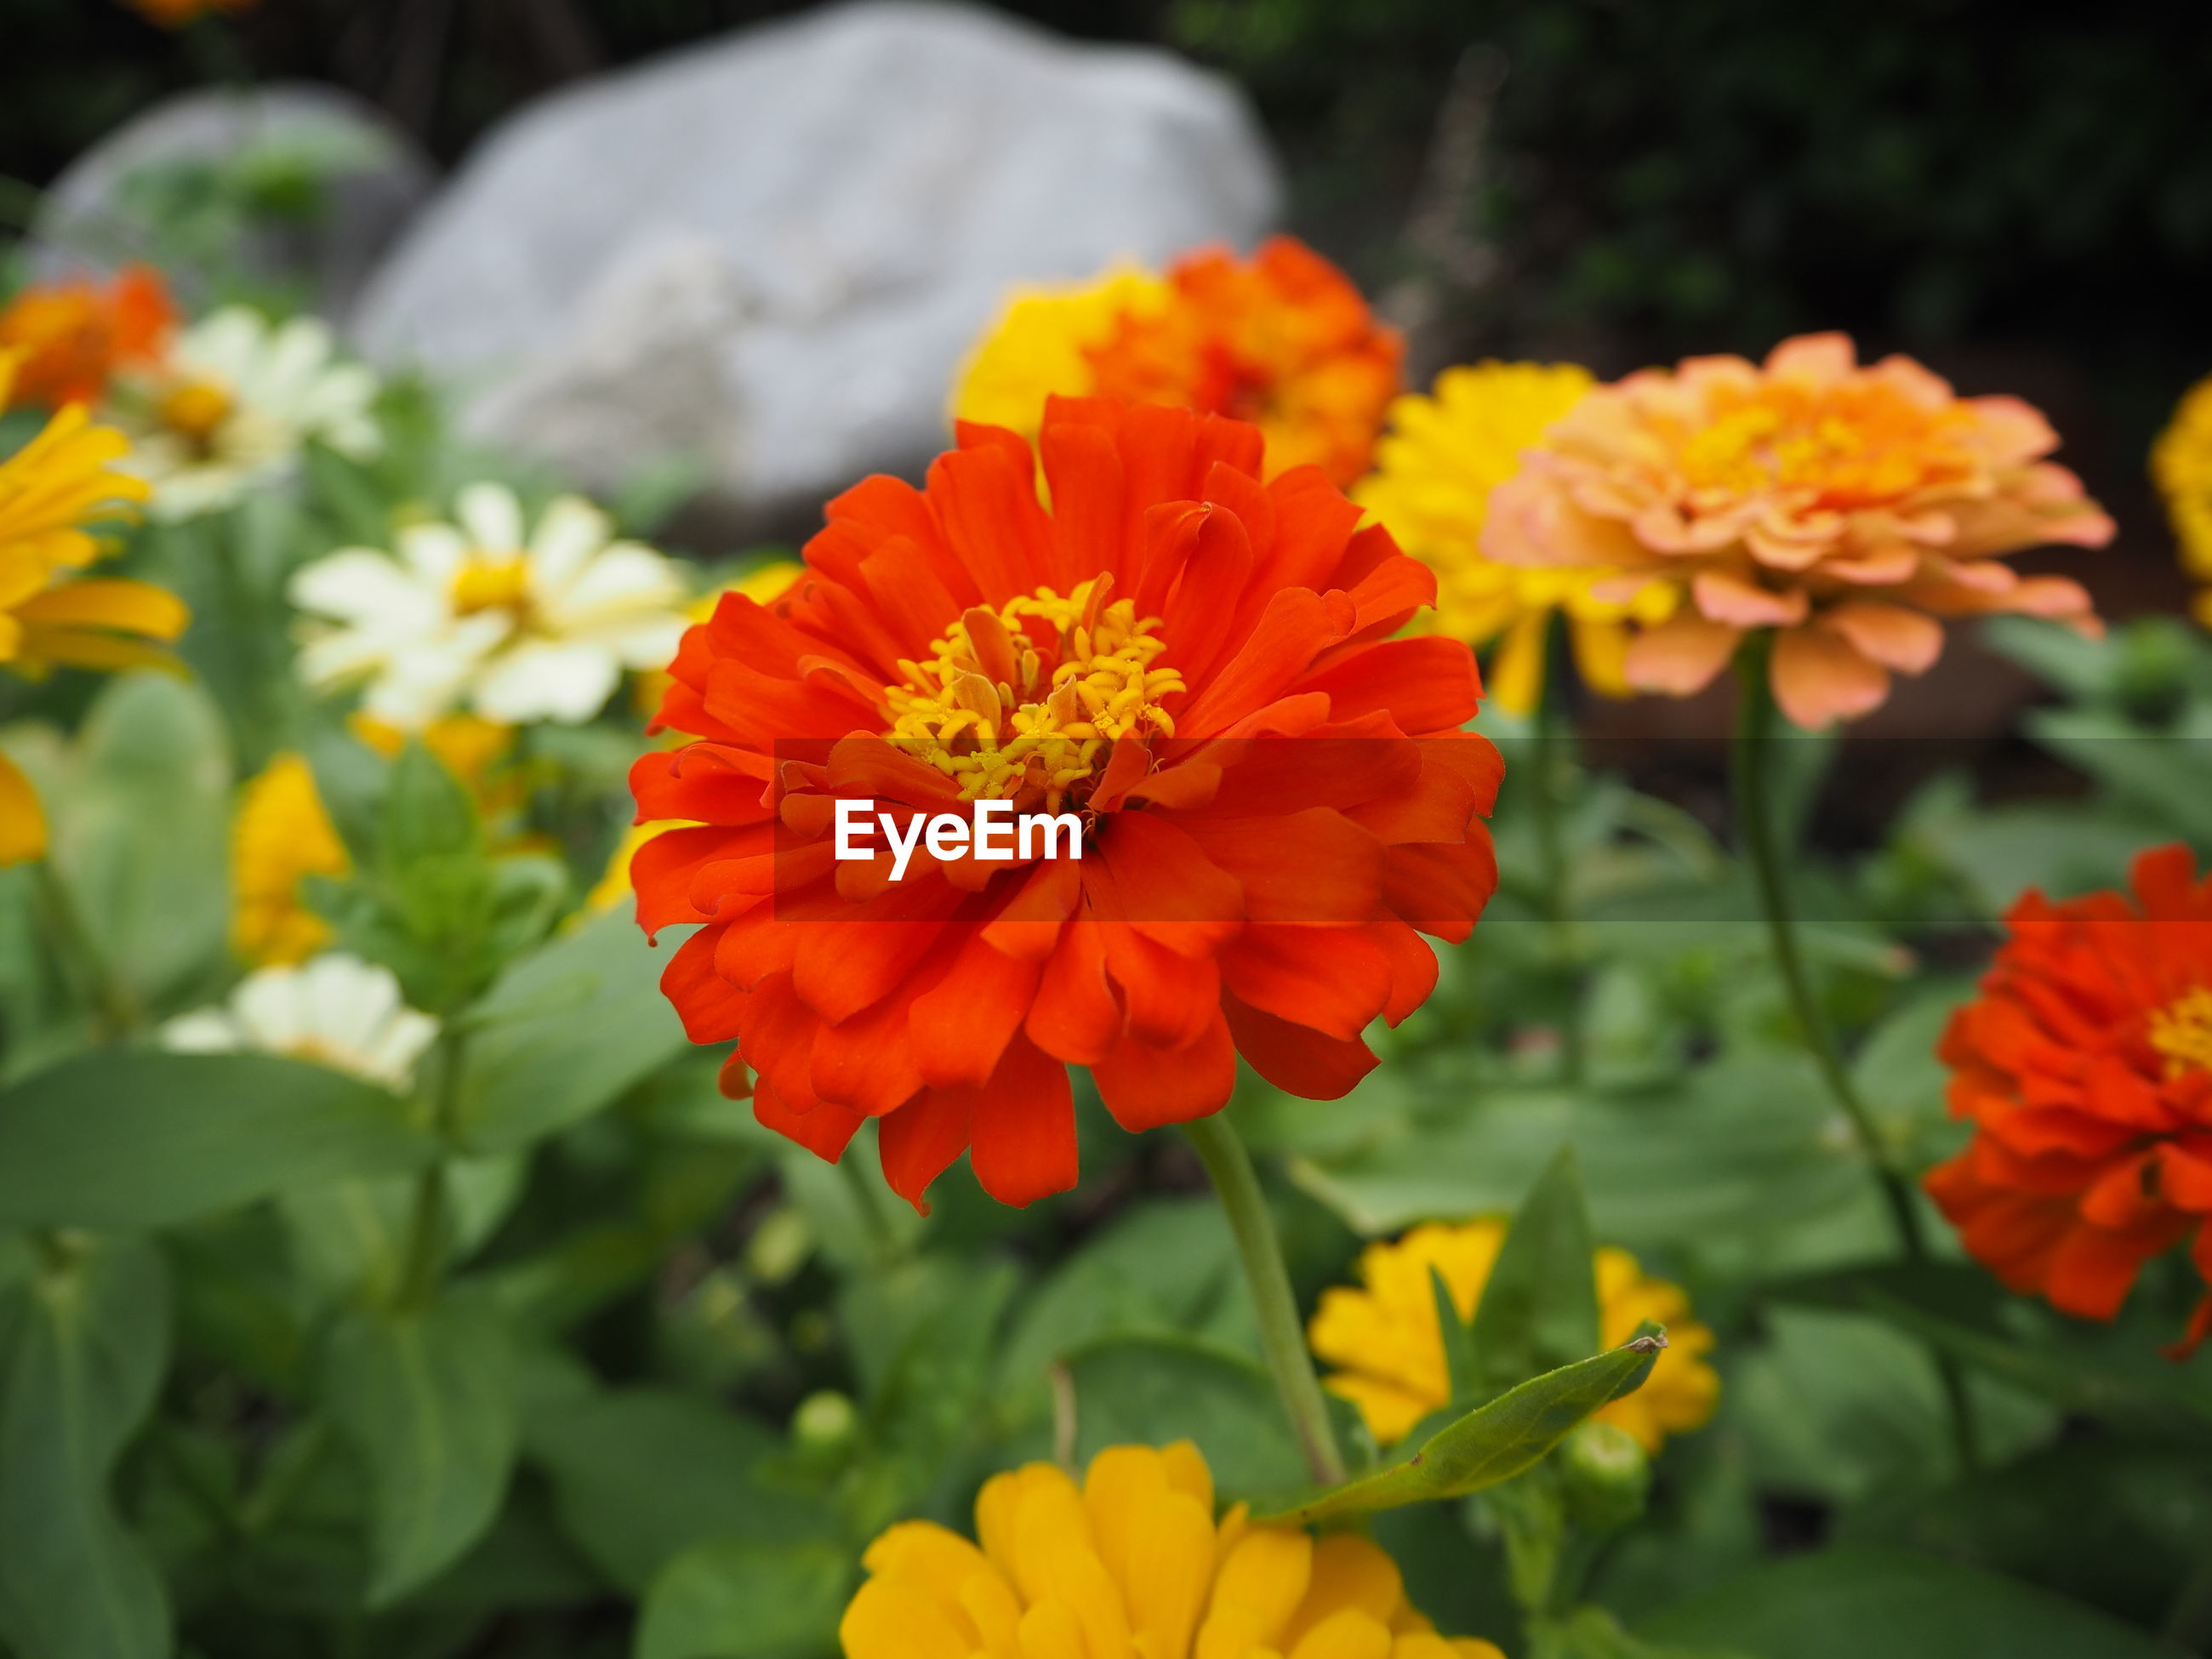 Close-up of orange marigold flowers